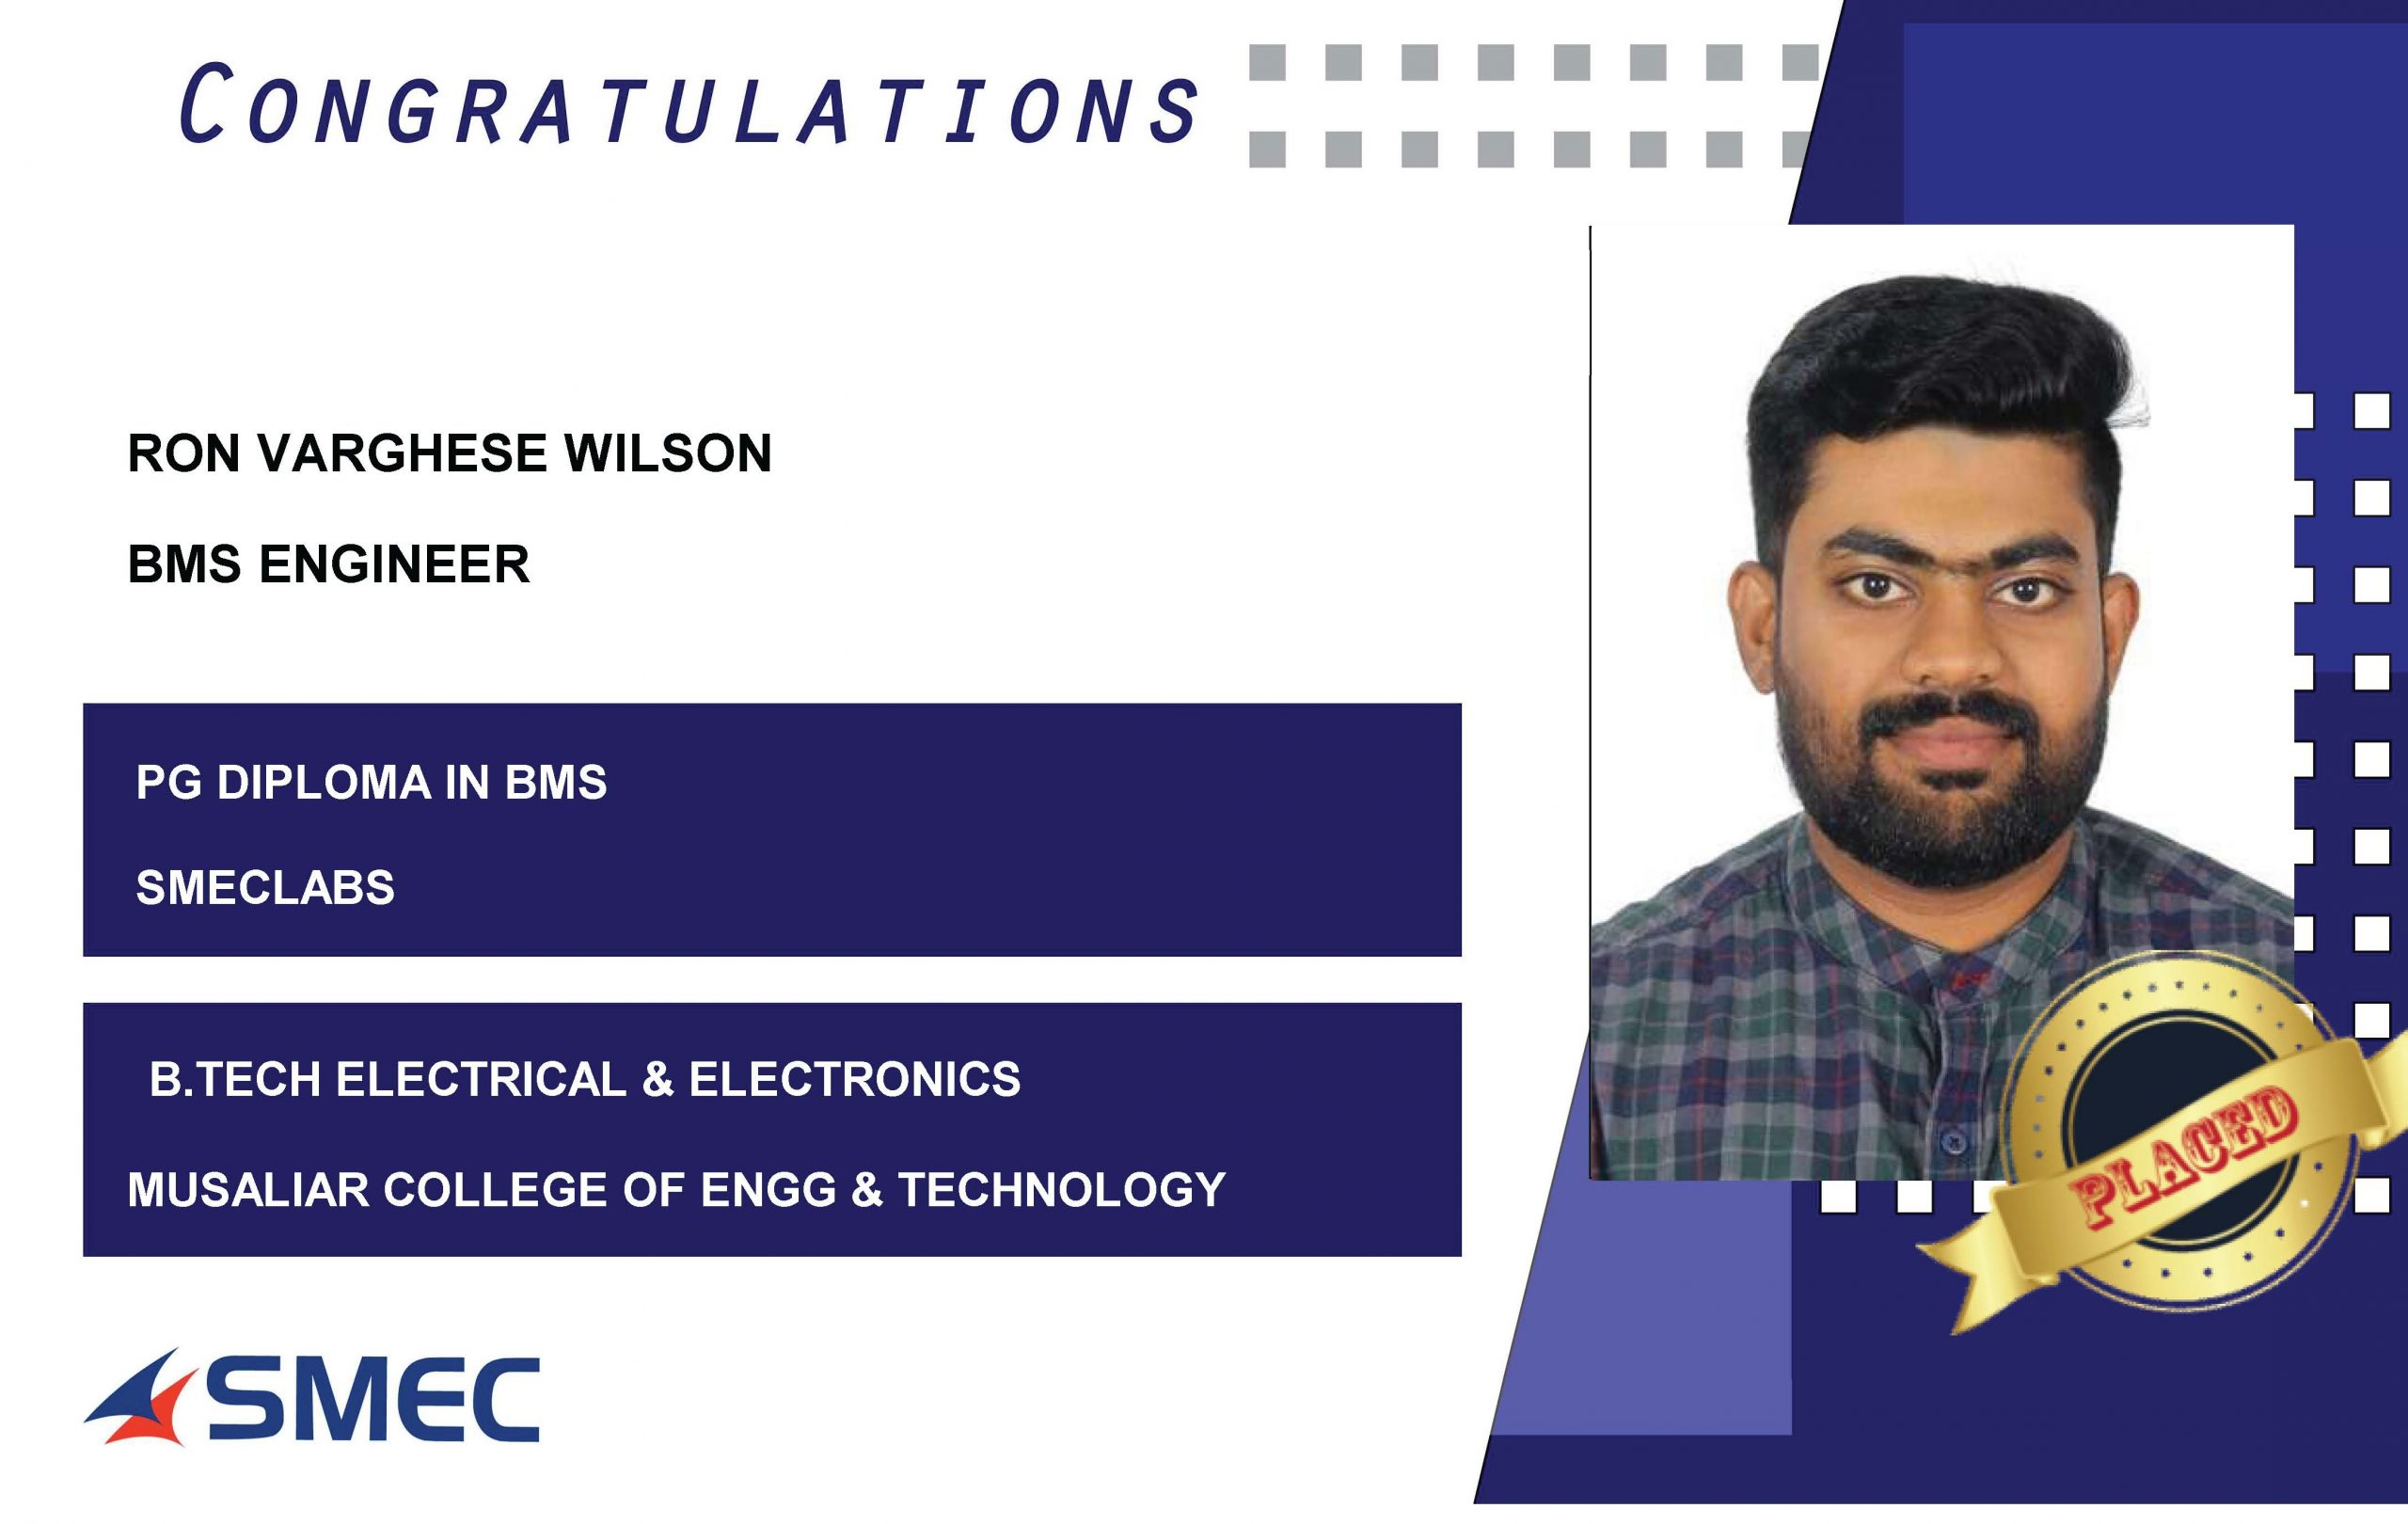 Ron Varghese Wilson- BMS Engineer